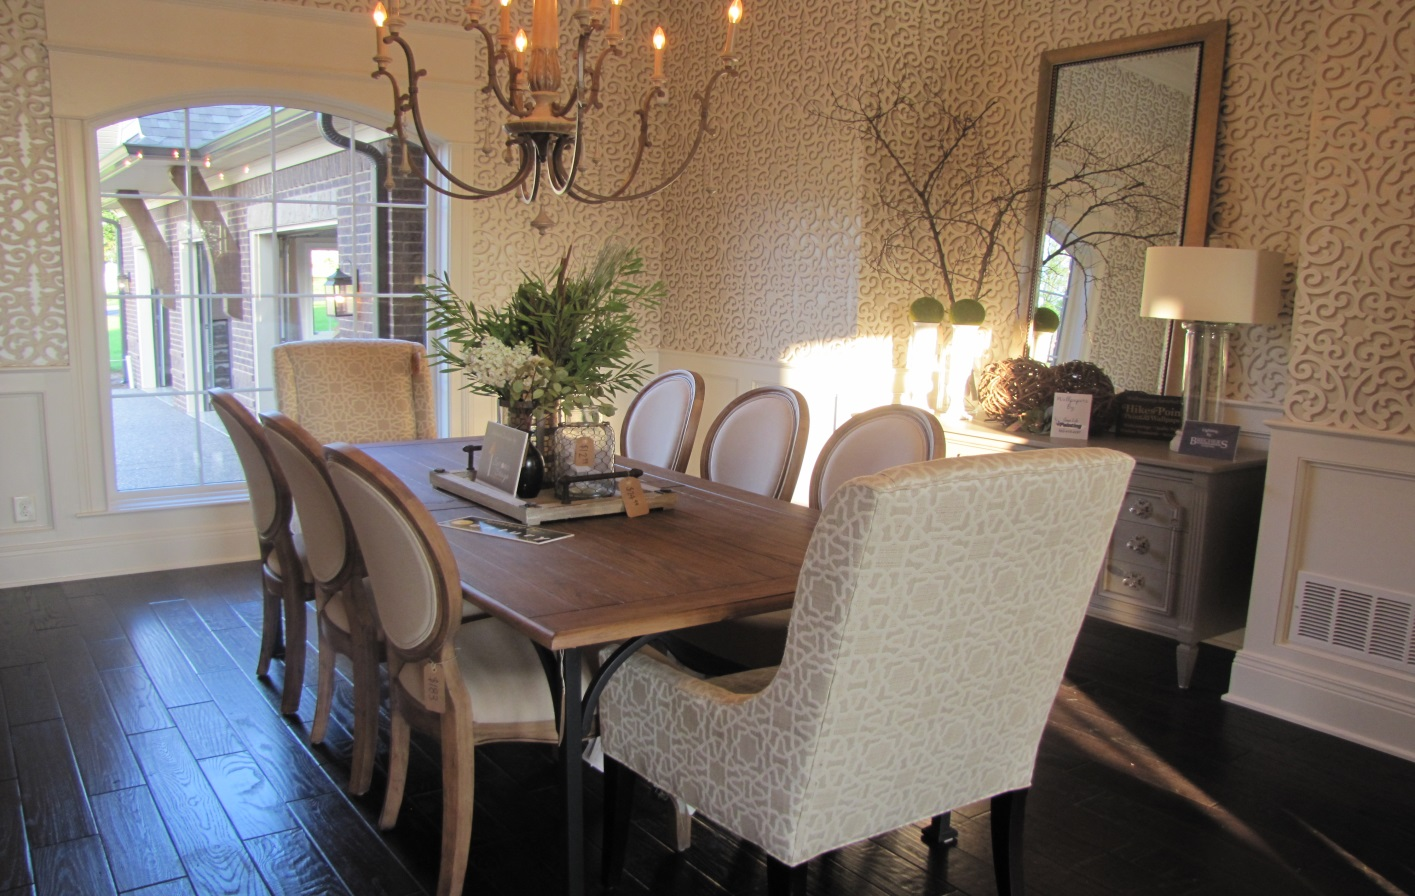 mismatched dining chairs preschool table and trend  save room for design